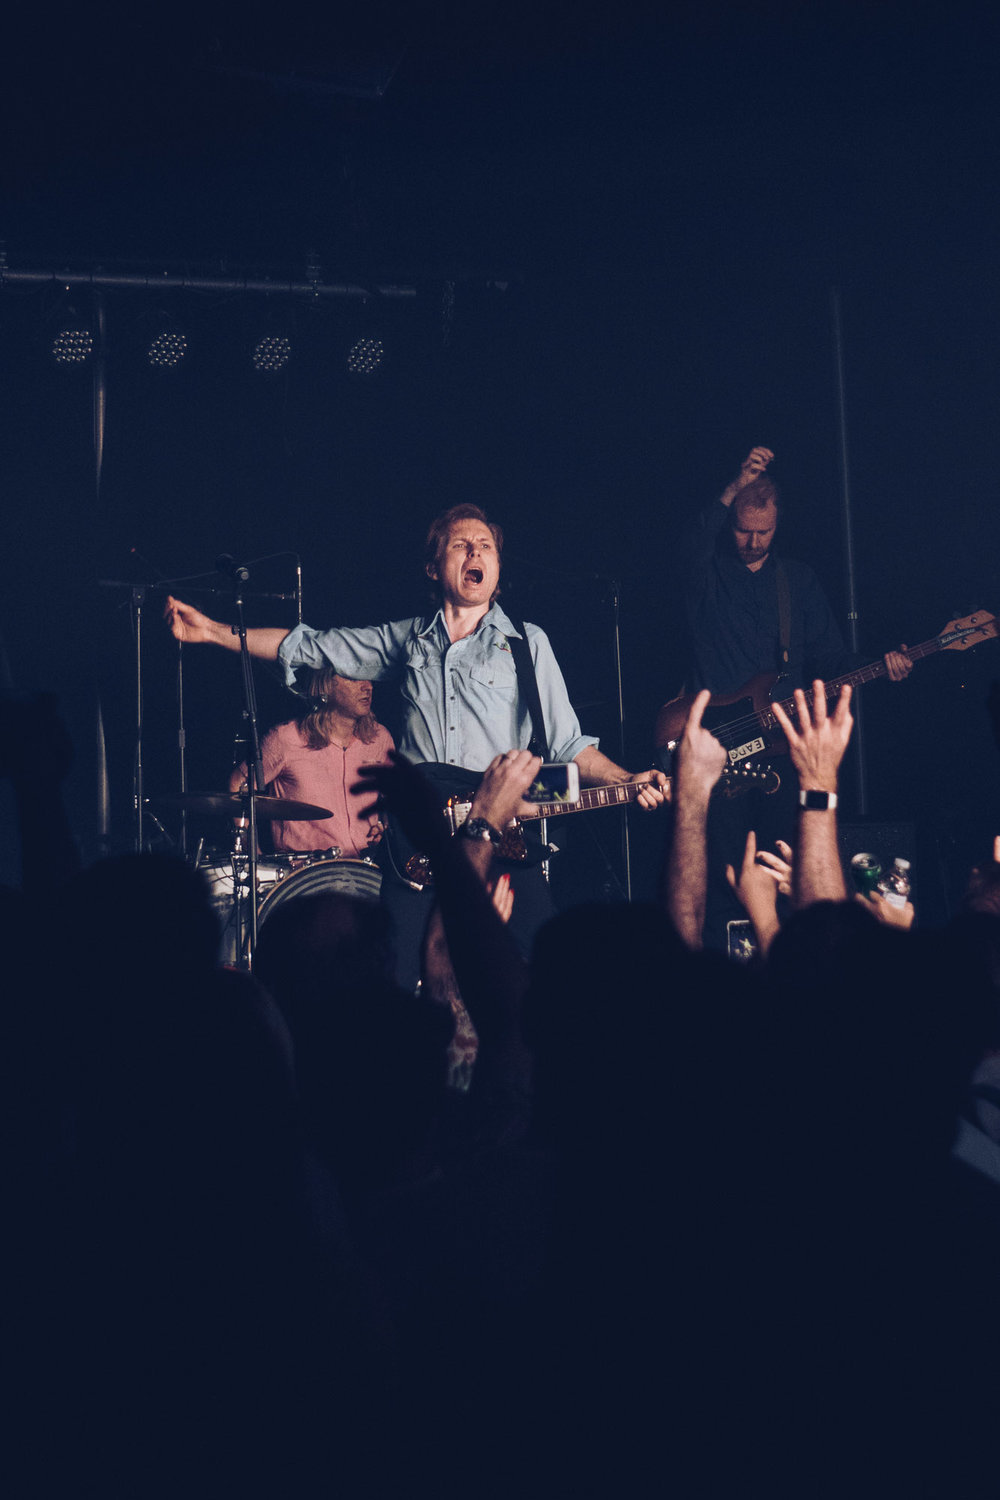 Franz Ferdinand (by Britton Strickland)